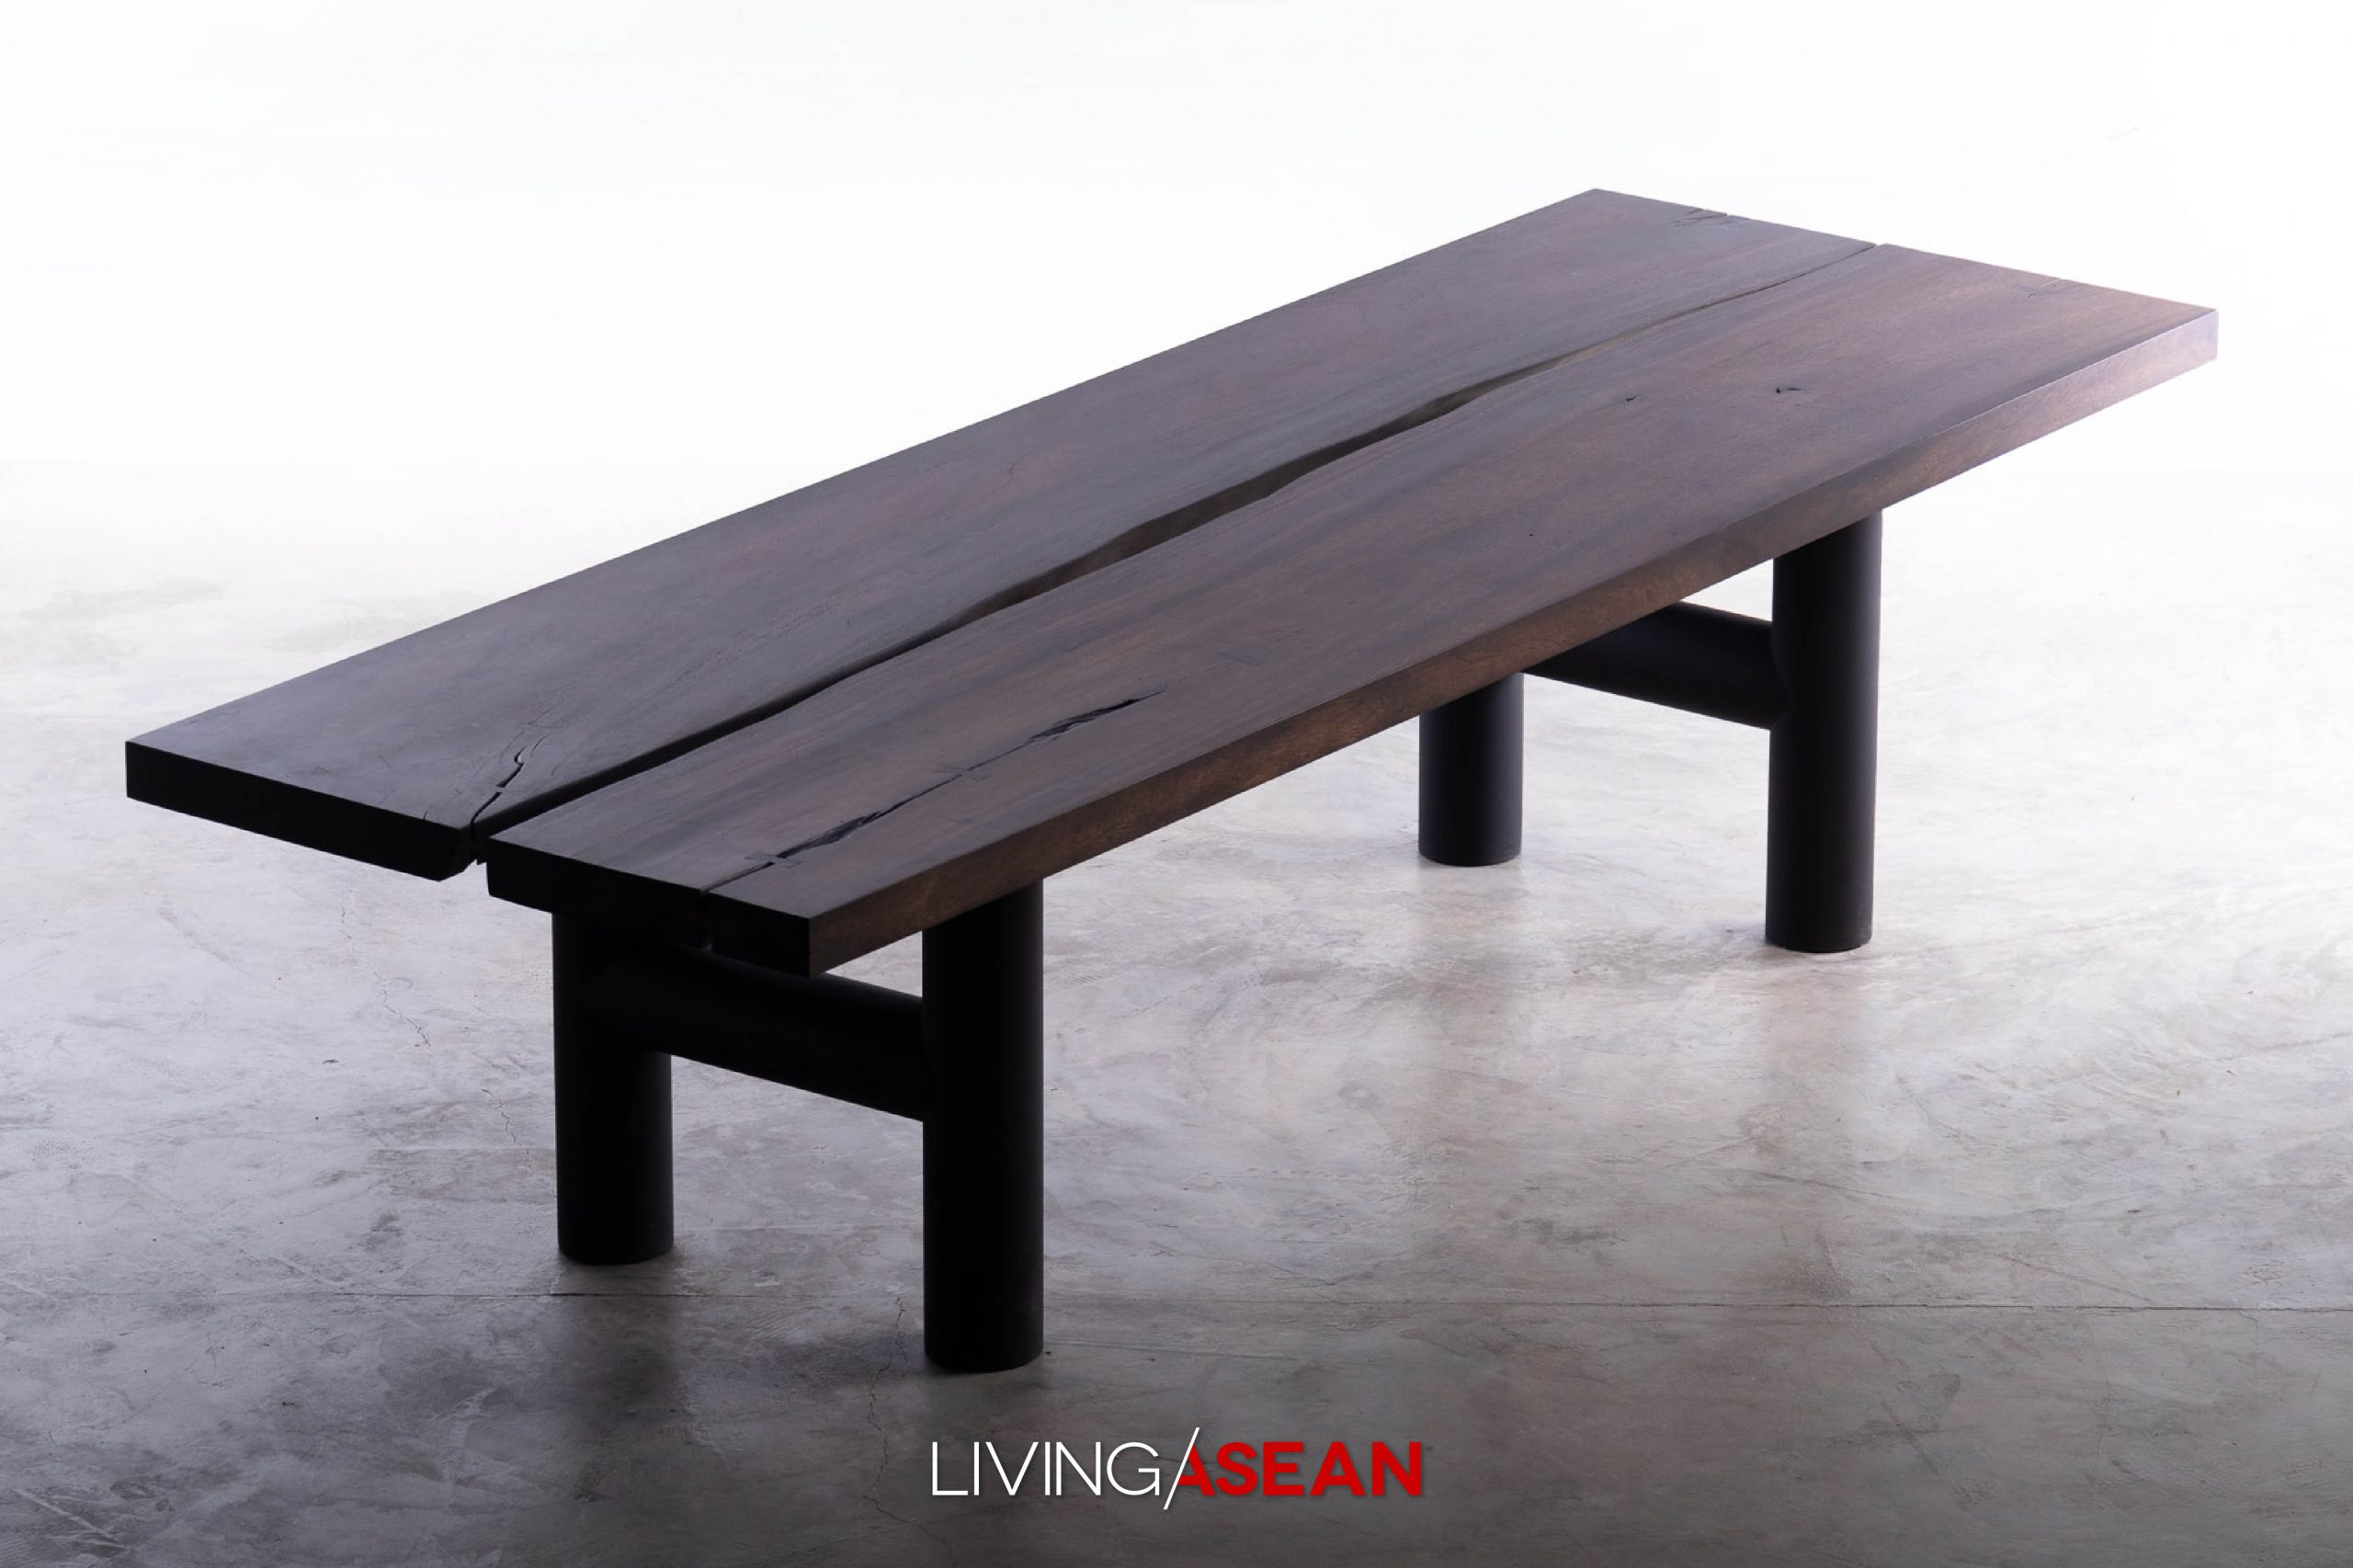 Moonler Wood Furniture: Adding a New Dimension to Chiang Mai Crafts